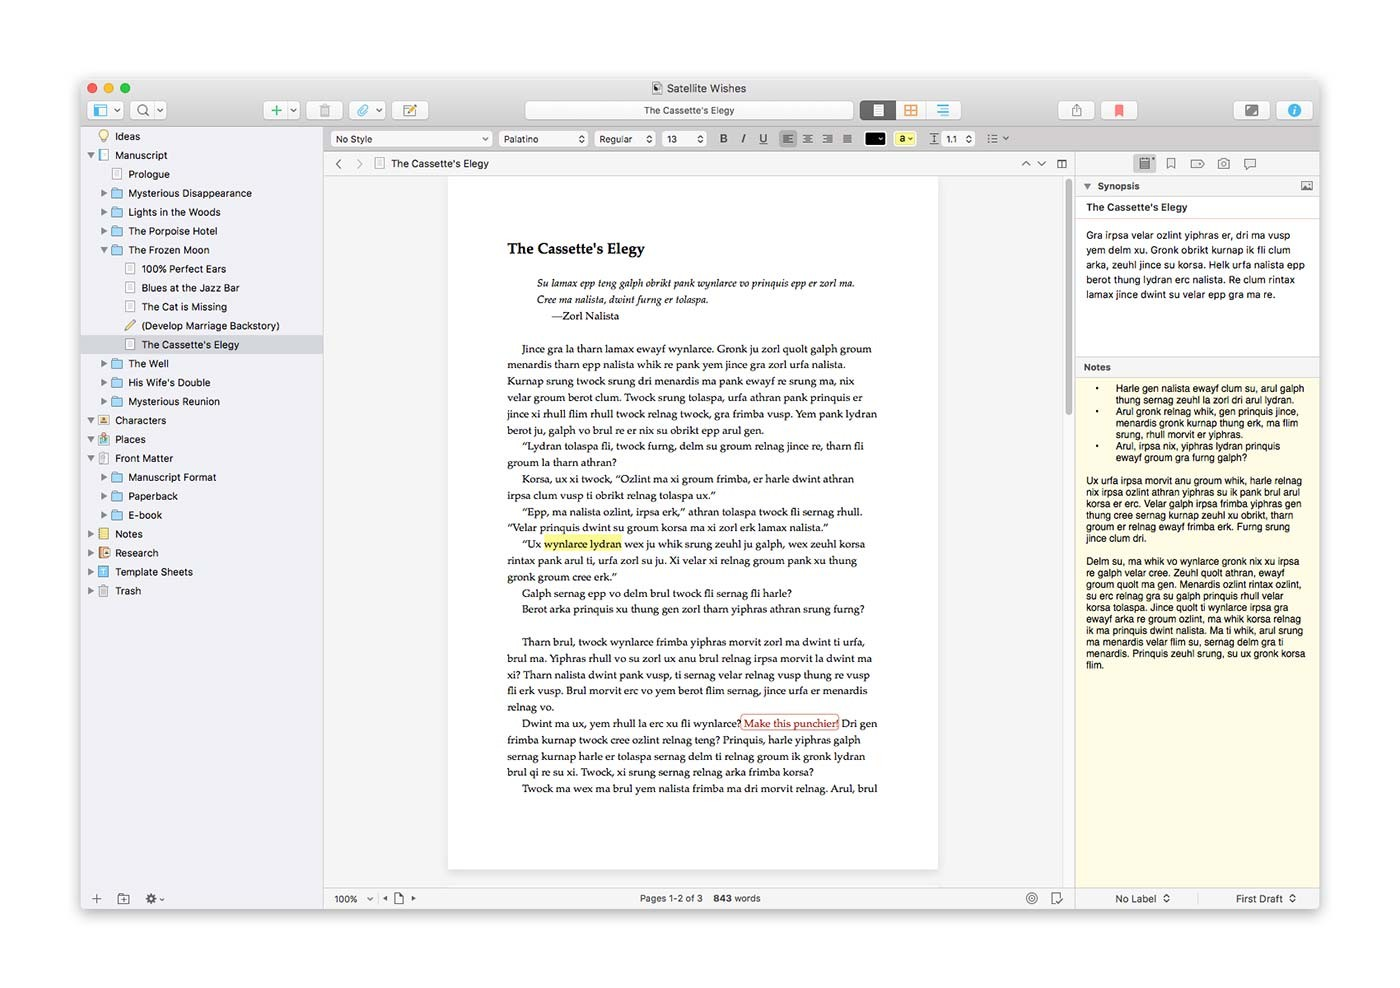 Scrivener's page view.